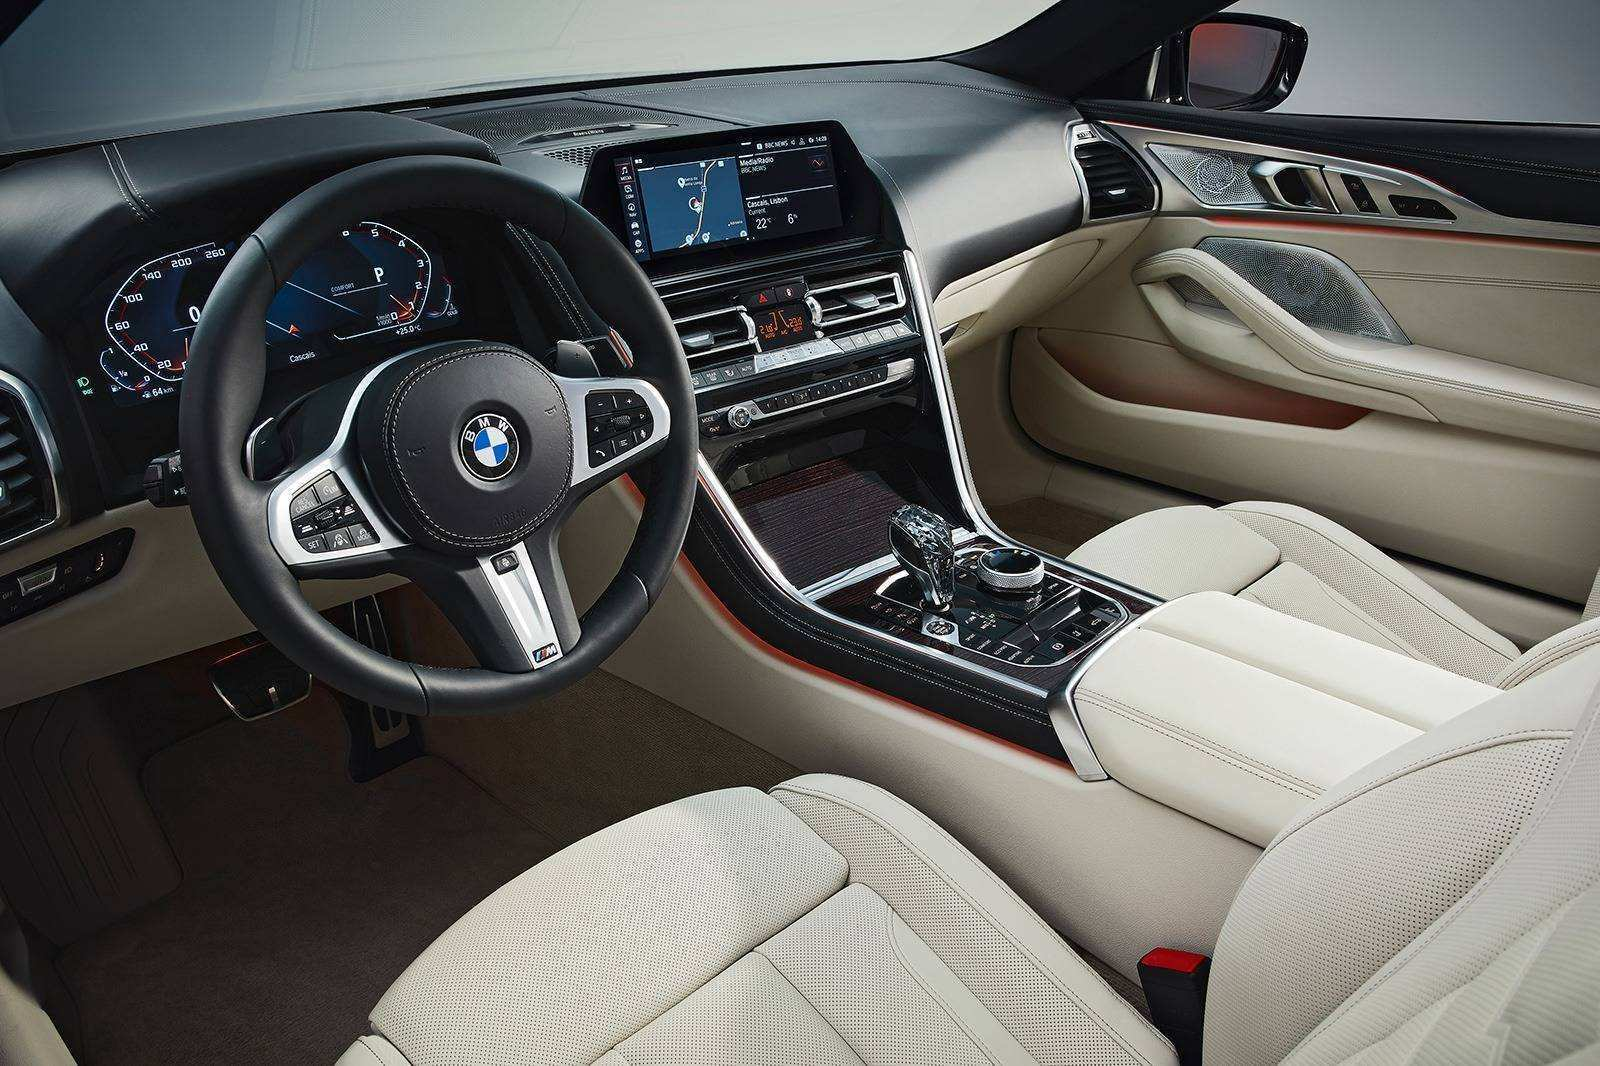 56 Great M850 Bmw 2019 Interior Exterior And Review Pricing for M850 Bmw 2019 Interior Exterior And Review